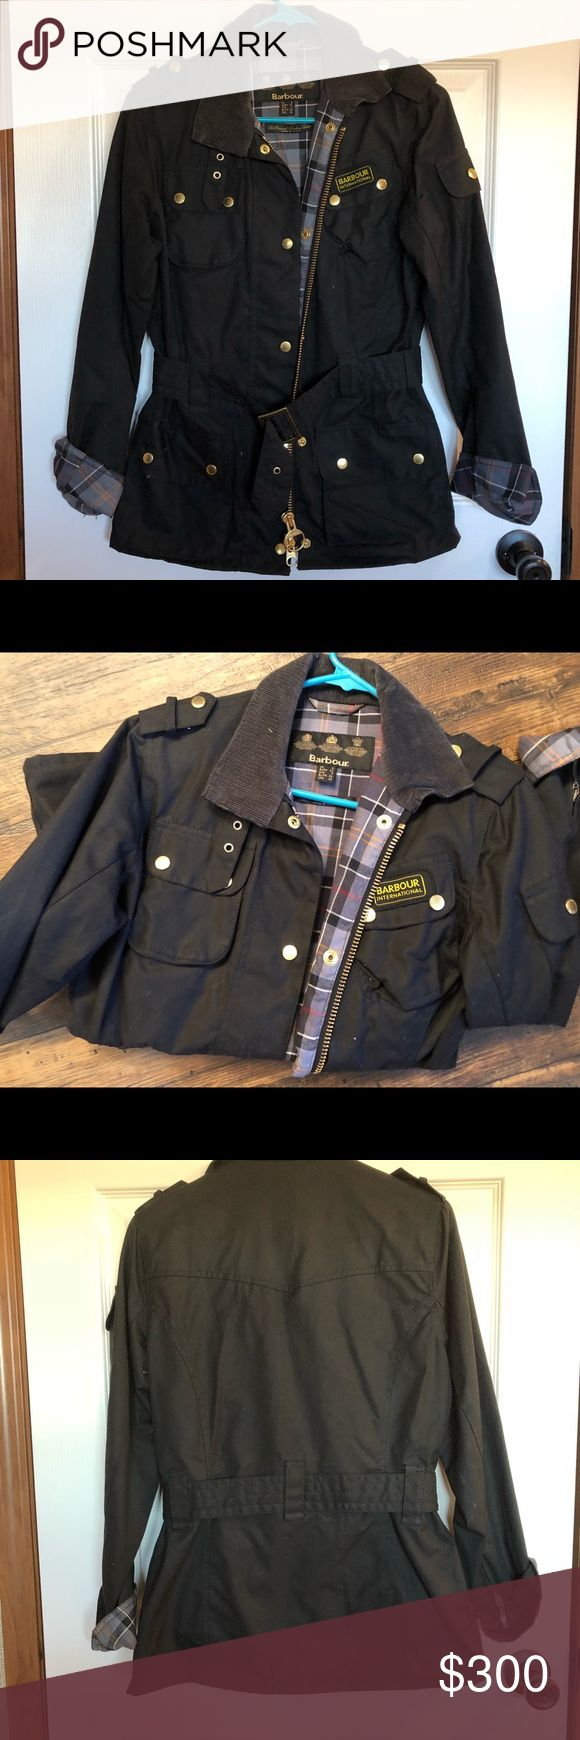 Barbour International Wax Jacket Like new! Worn a handful of times.  Part of the Tourer collection by Barbour International, this fitted and flattering waxed jacket features an adjustable belt with a large brass buckle to cinch in the waist, creating a tailored, feminine shape. Authentic biker jacket details – including shoulder epaulettes, collar strap, sleeve pocket and zipped cuffs – add a moto-inspired edge, and the signature Modern Tartan print adorns the 100% cotton lining. Barbour…